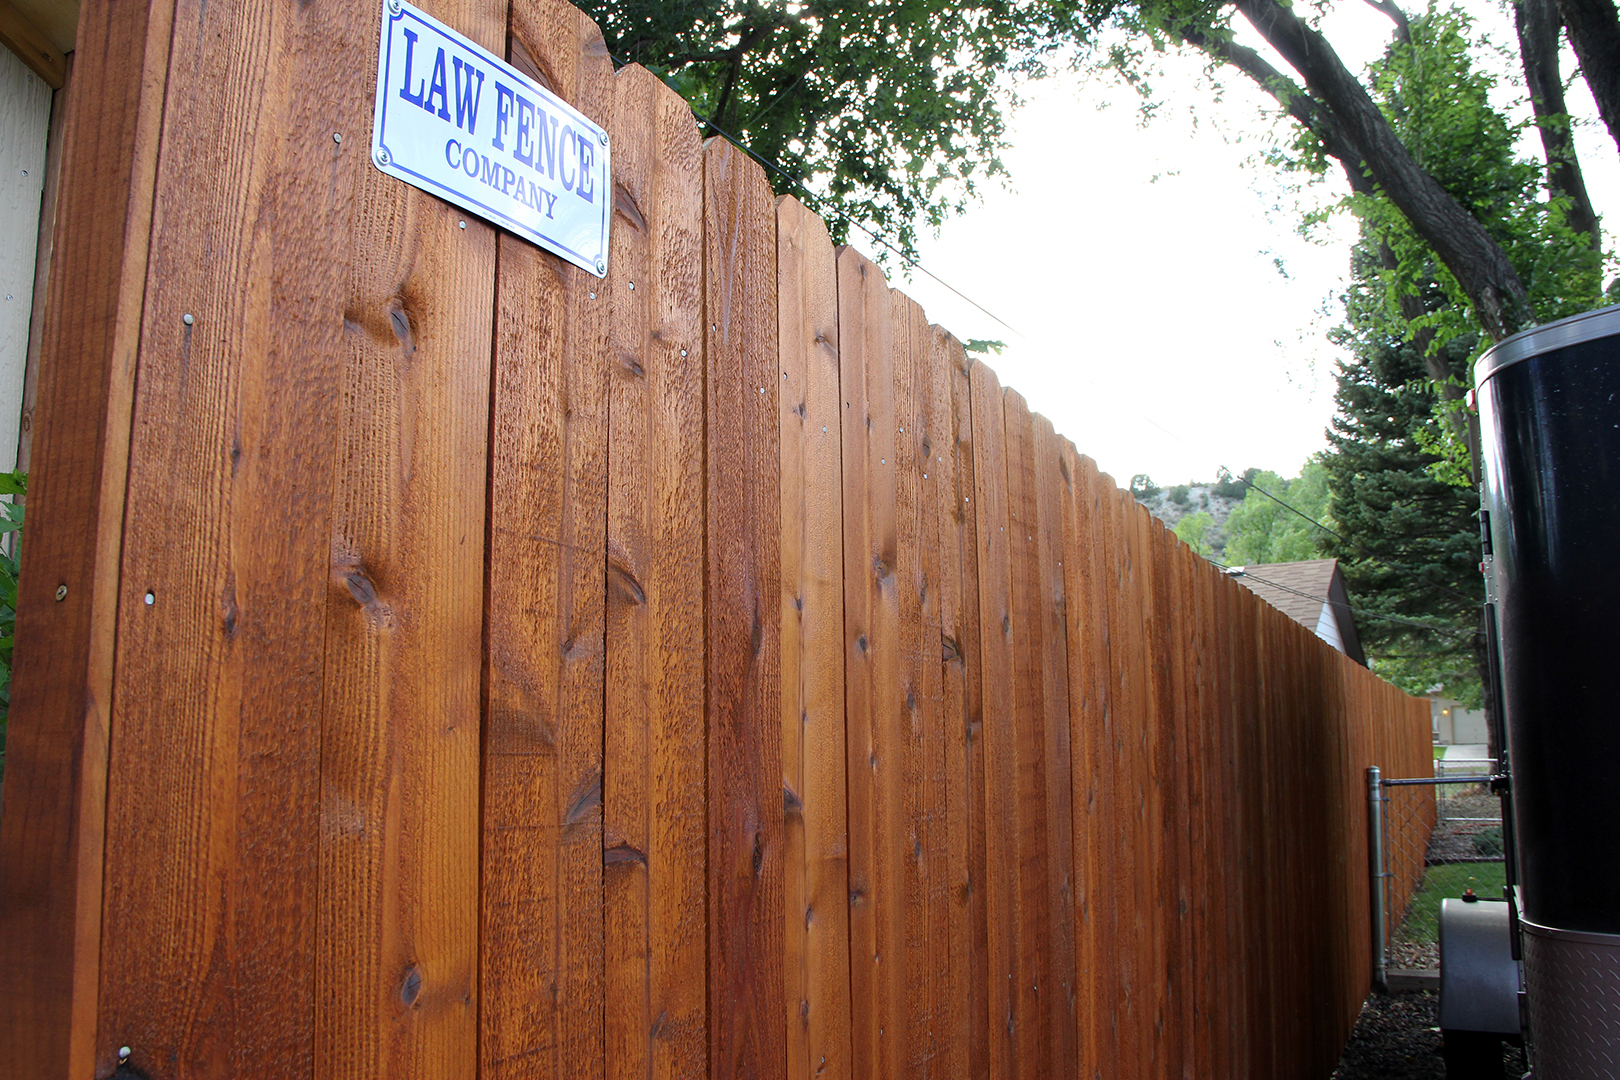 Law Fence Custom Cedar Fence in Colorado Springs